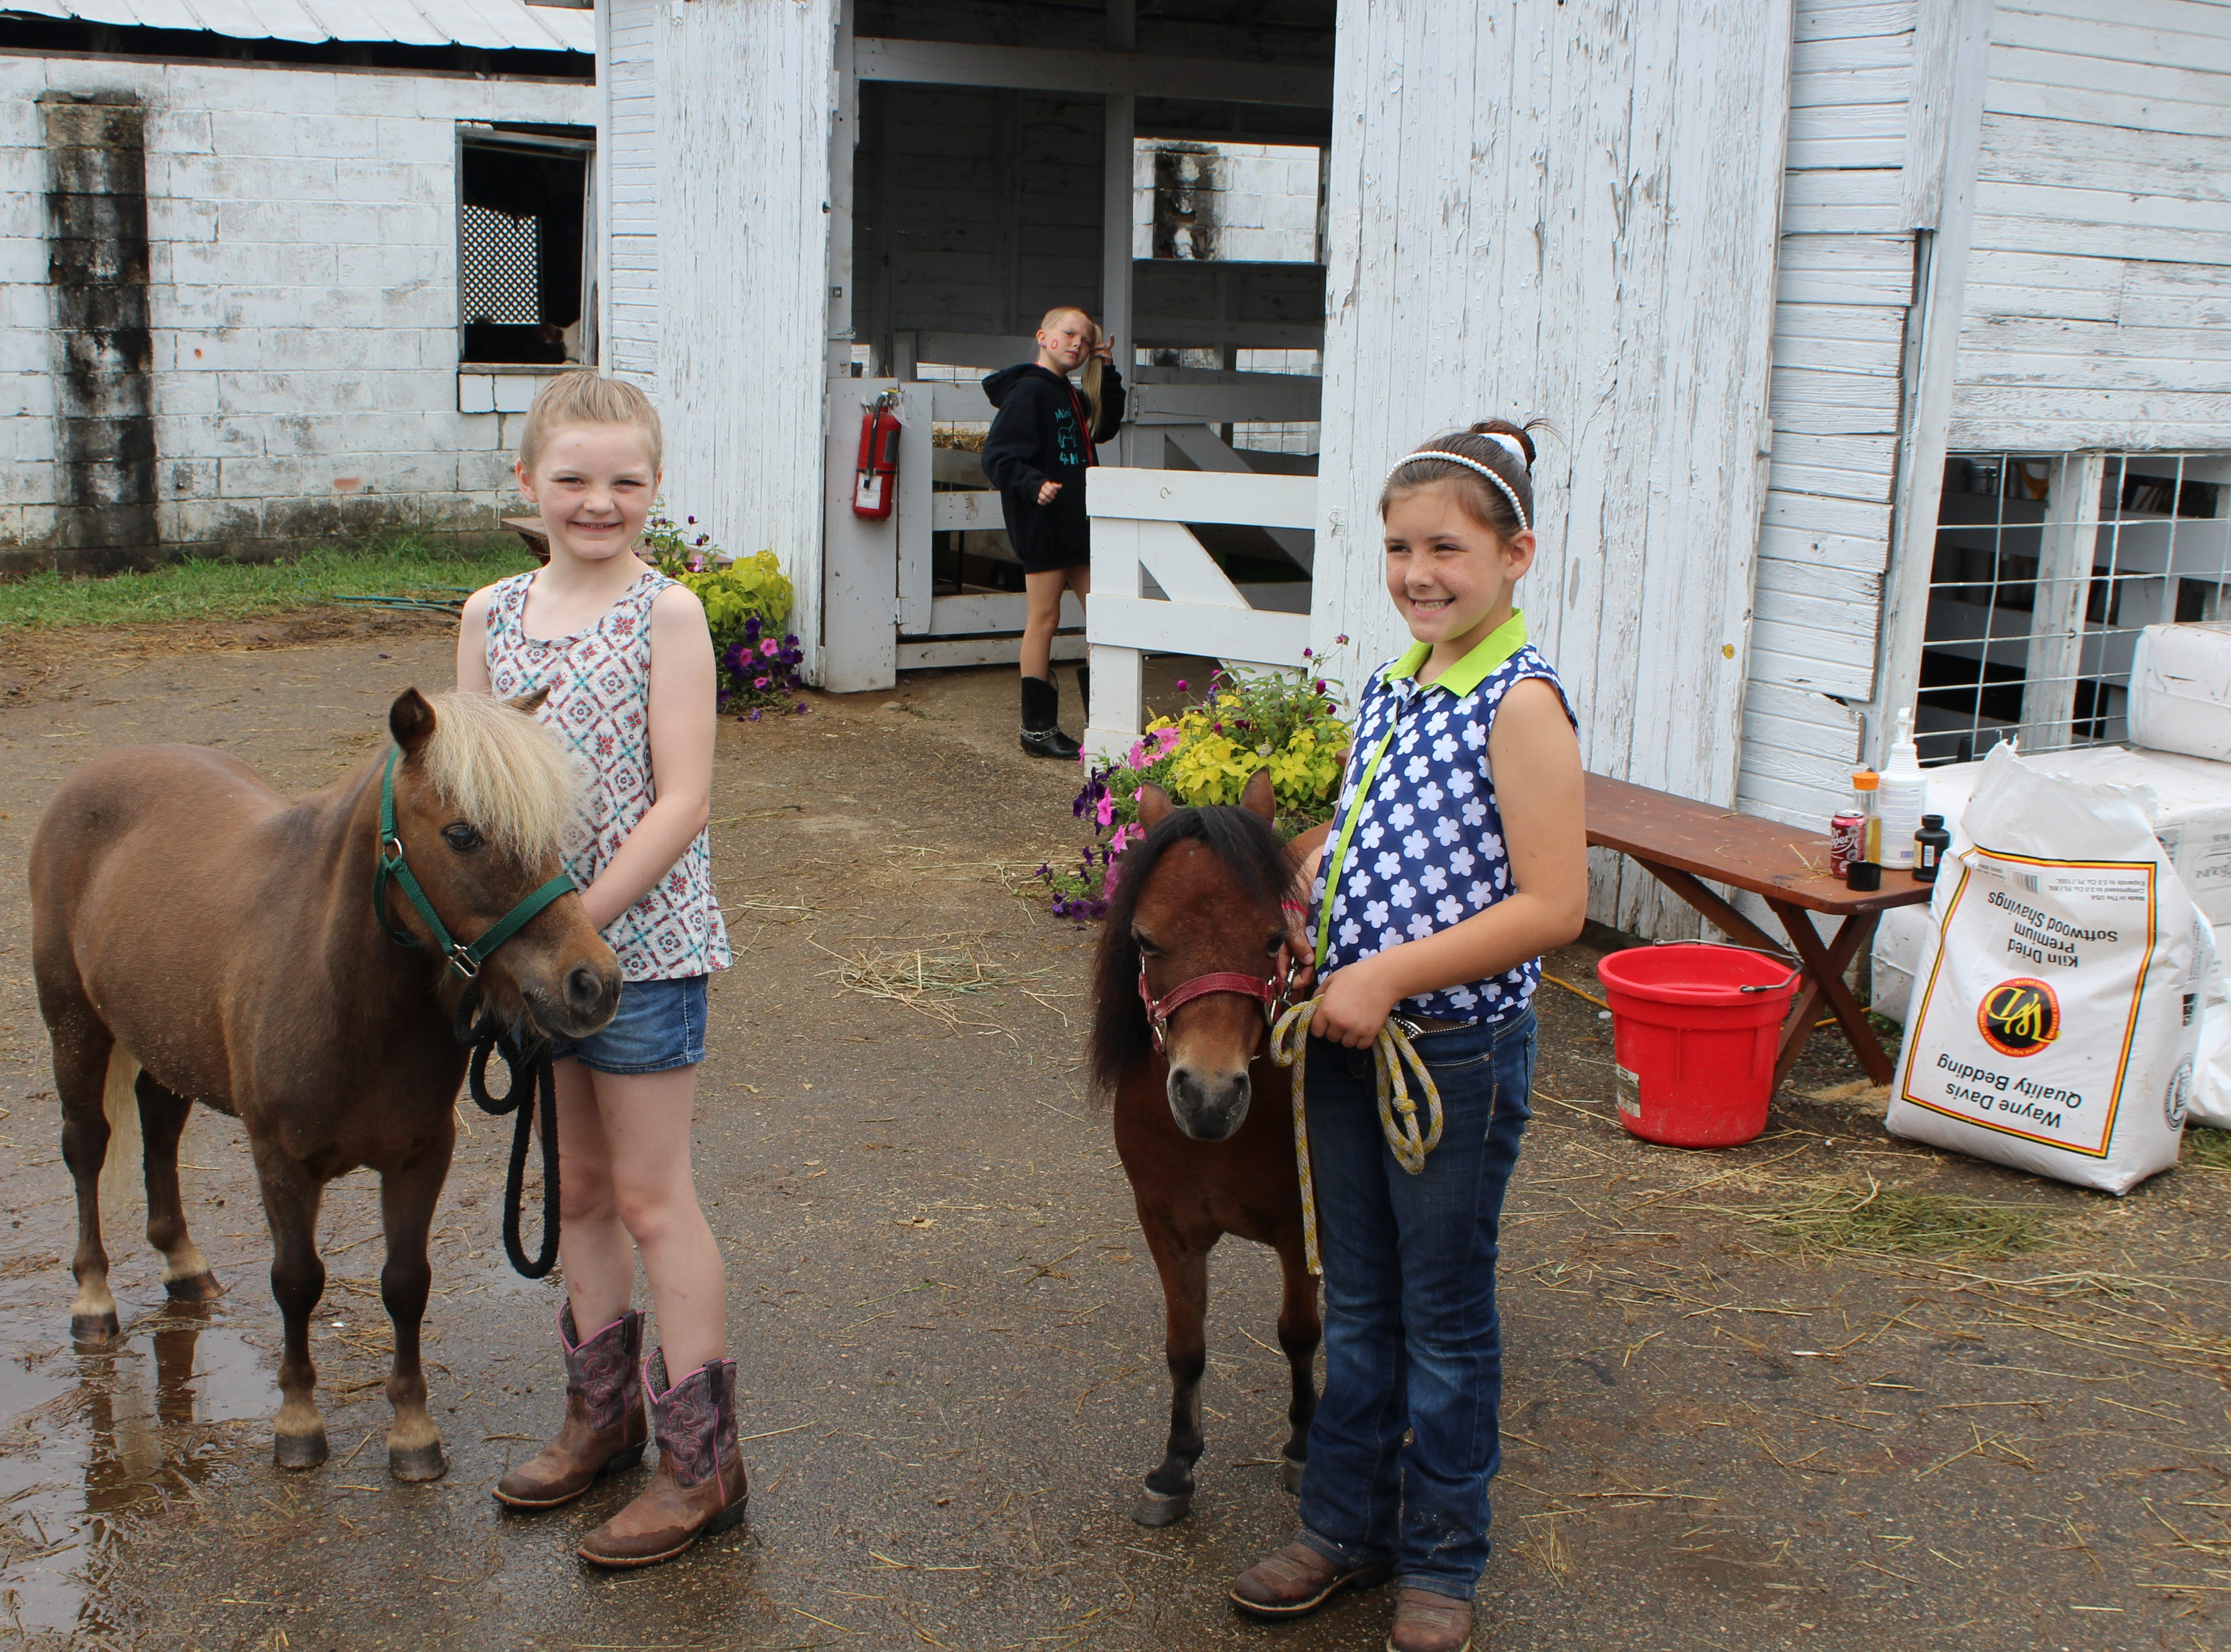 Maeve Russell and Ava Brodock are members of the Mini Whinnies 4-H Club. Members of the club show miniature horses at the Calhoun County Fair.